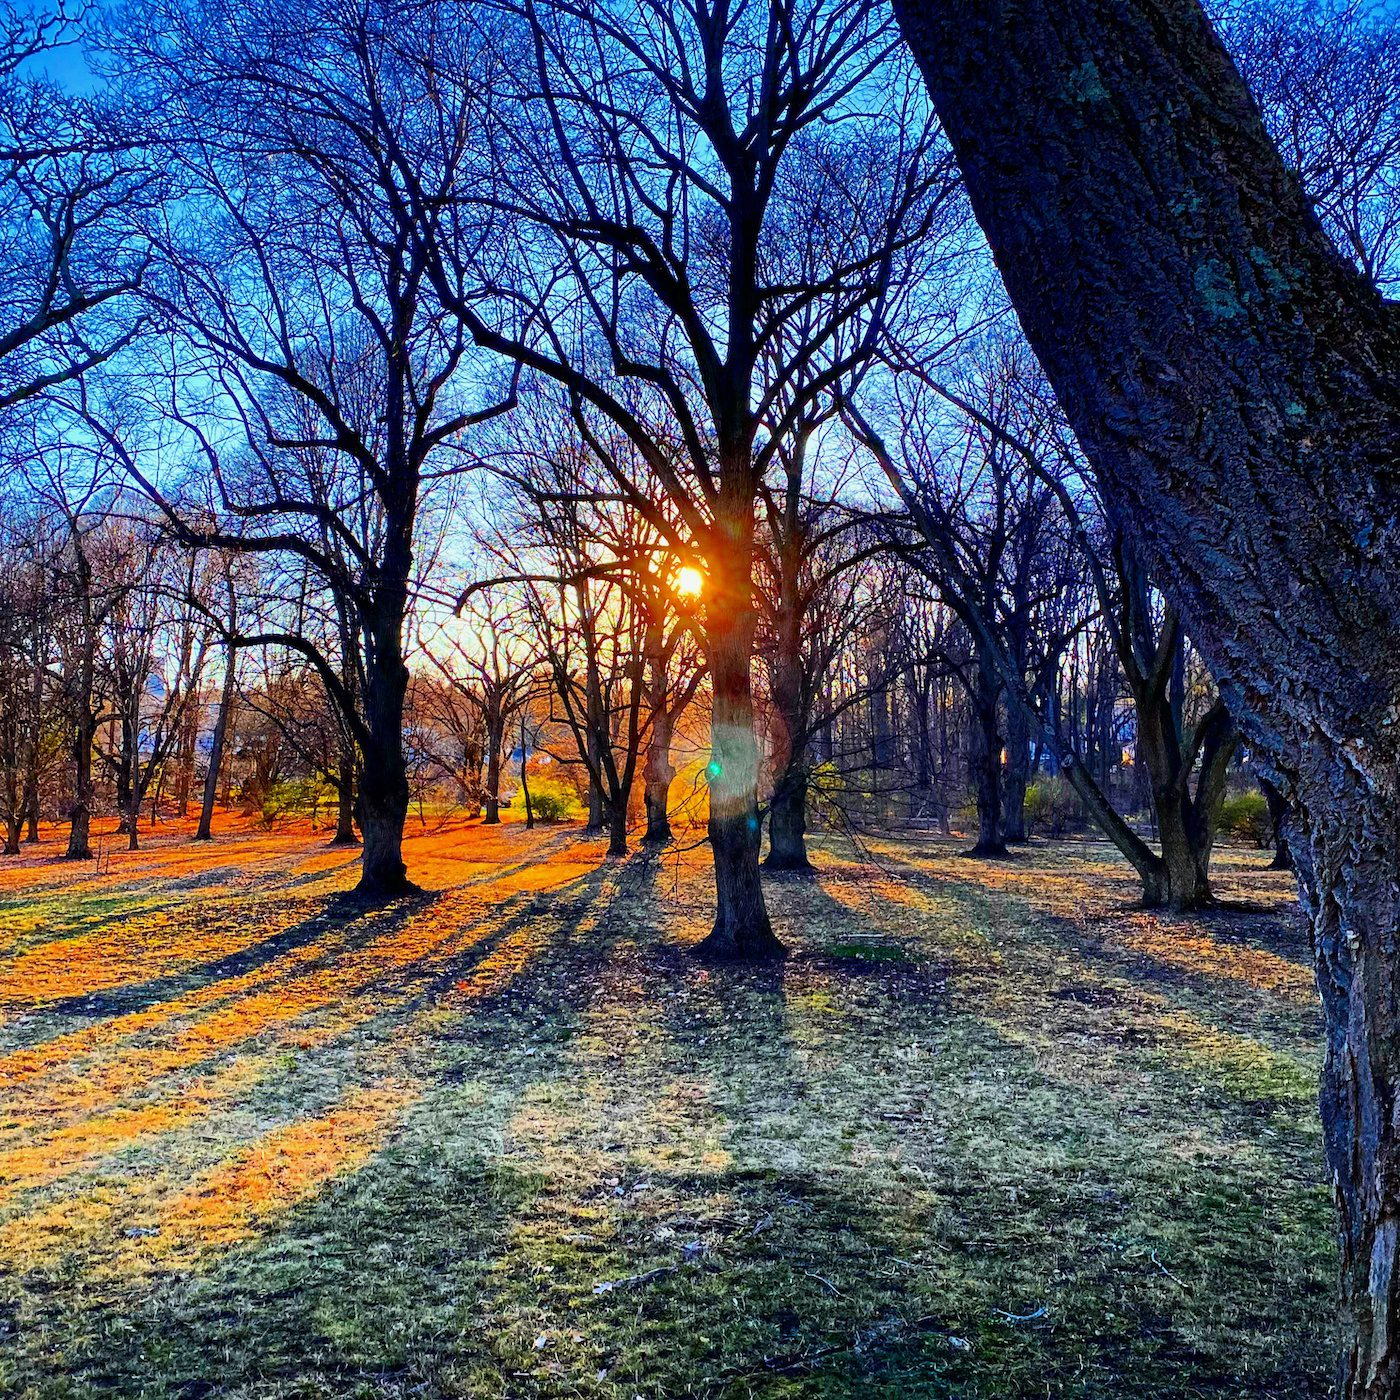 Sunset through trees in the Arnold Arboretum in Boston